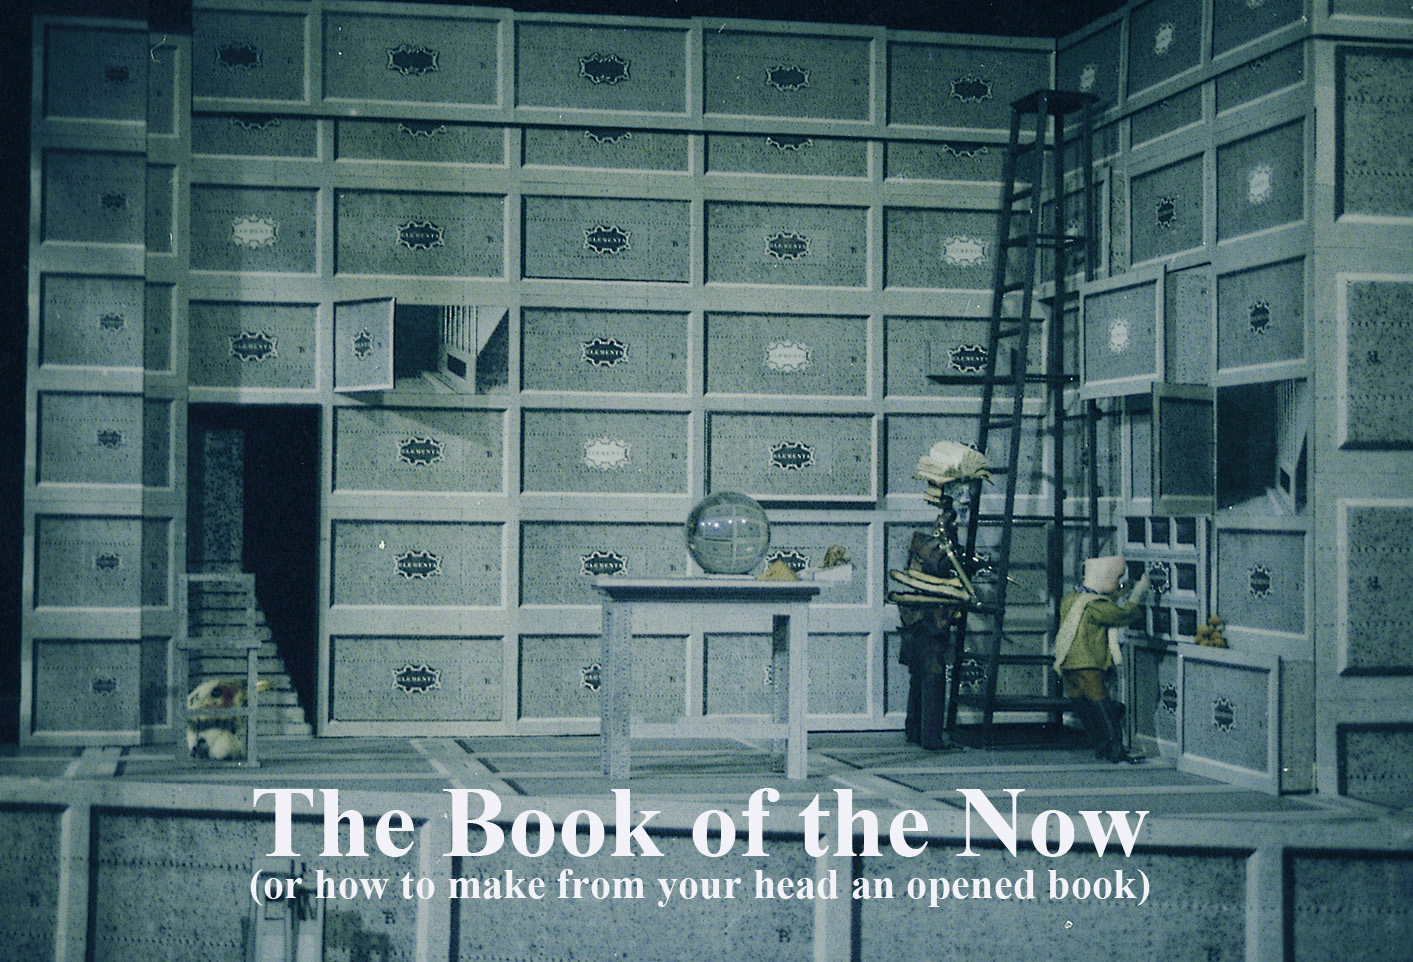 The Book of the Now